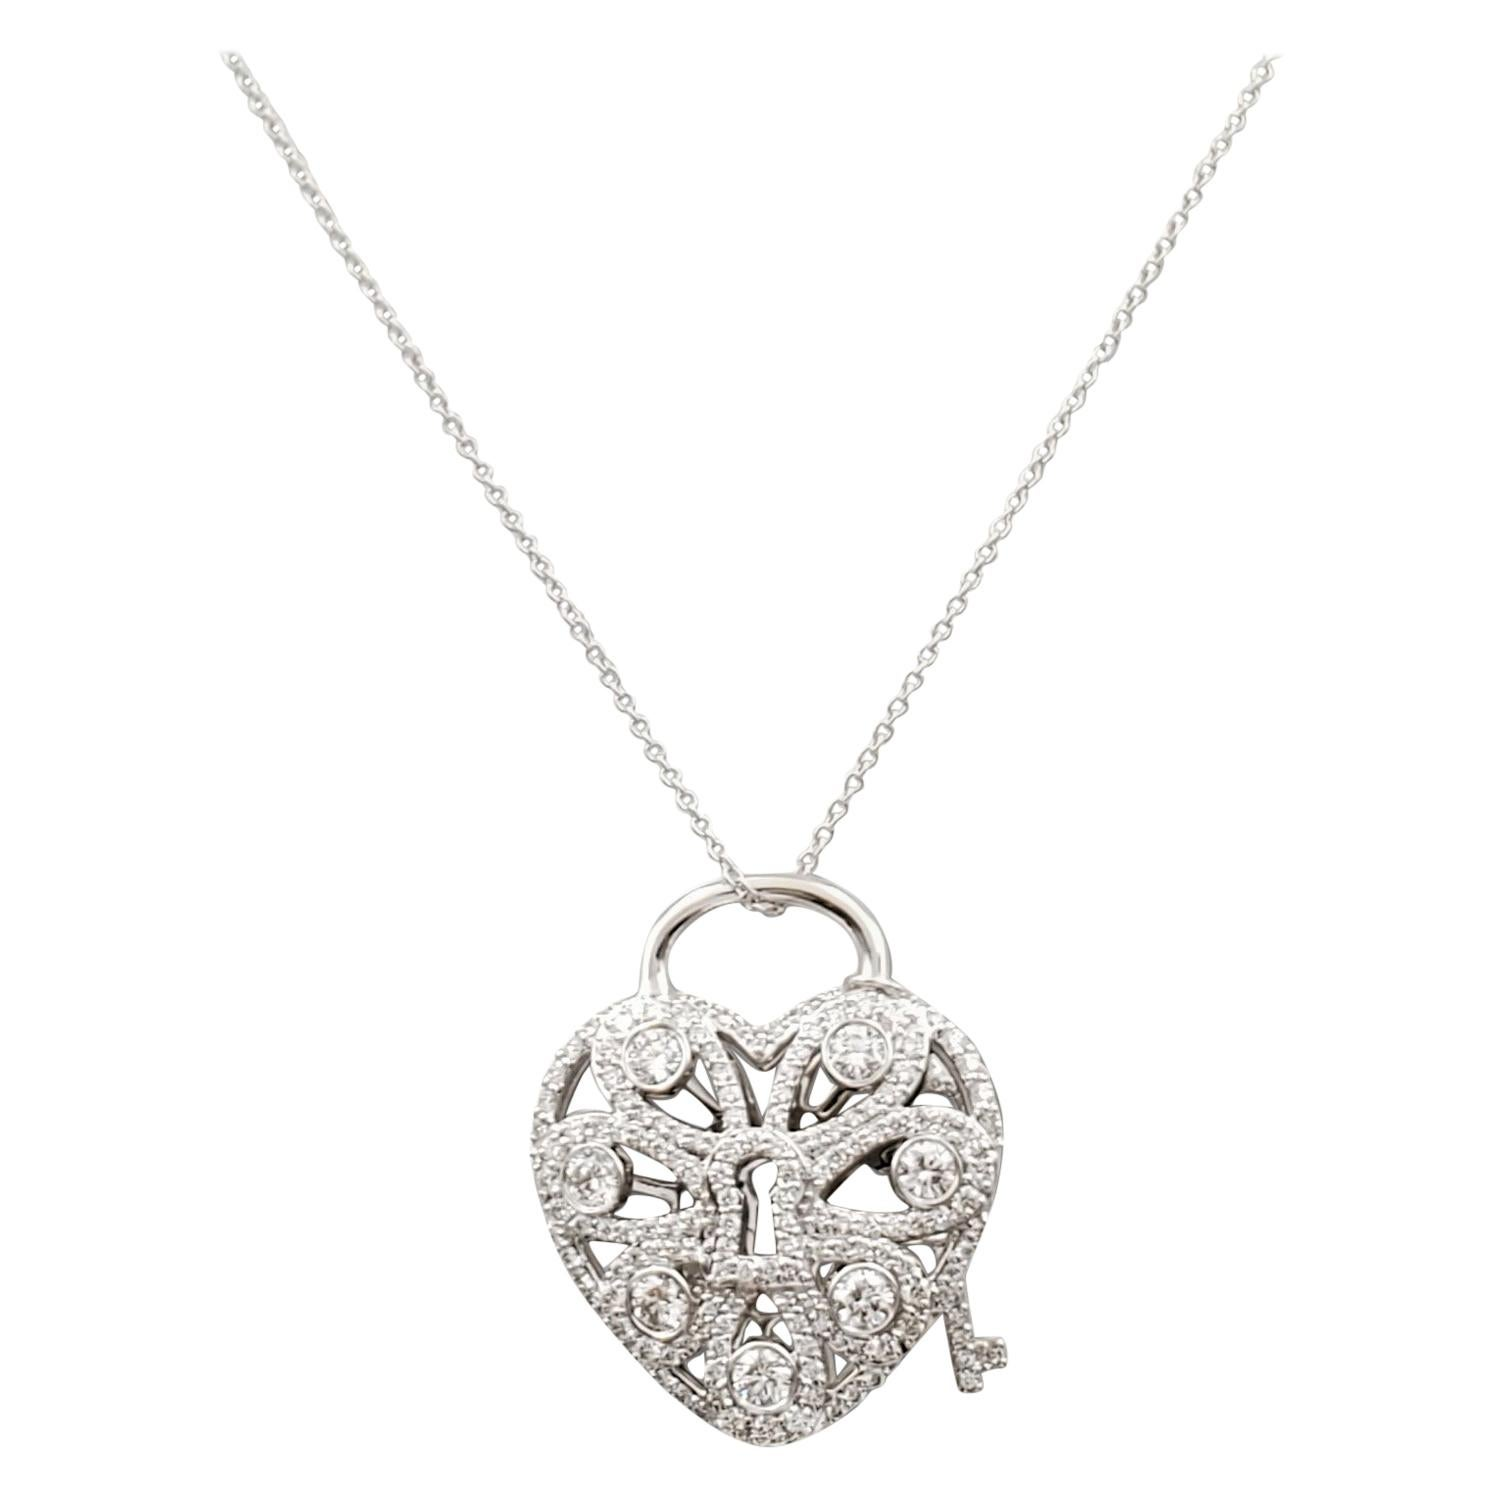 Tiffany & Co. White Gold and Diamond 'Filigree' Heart and Key Pendant Necklace